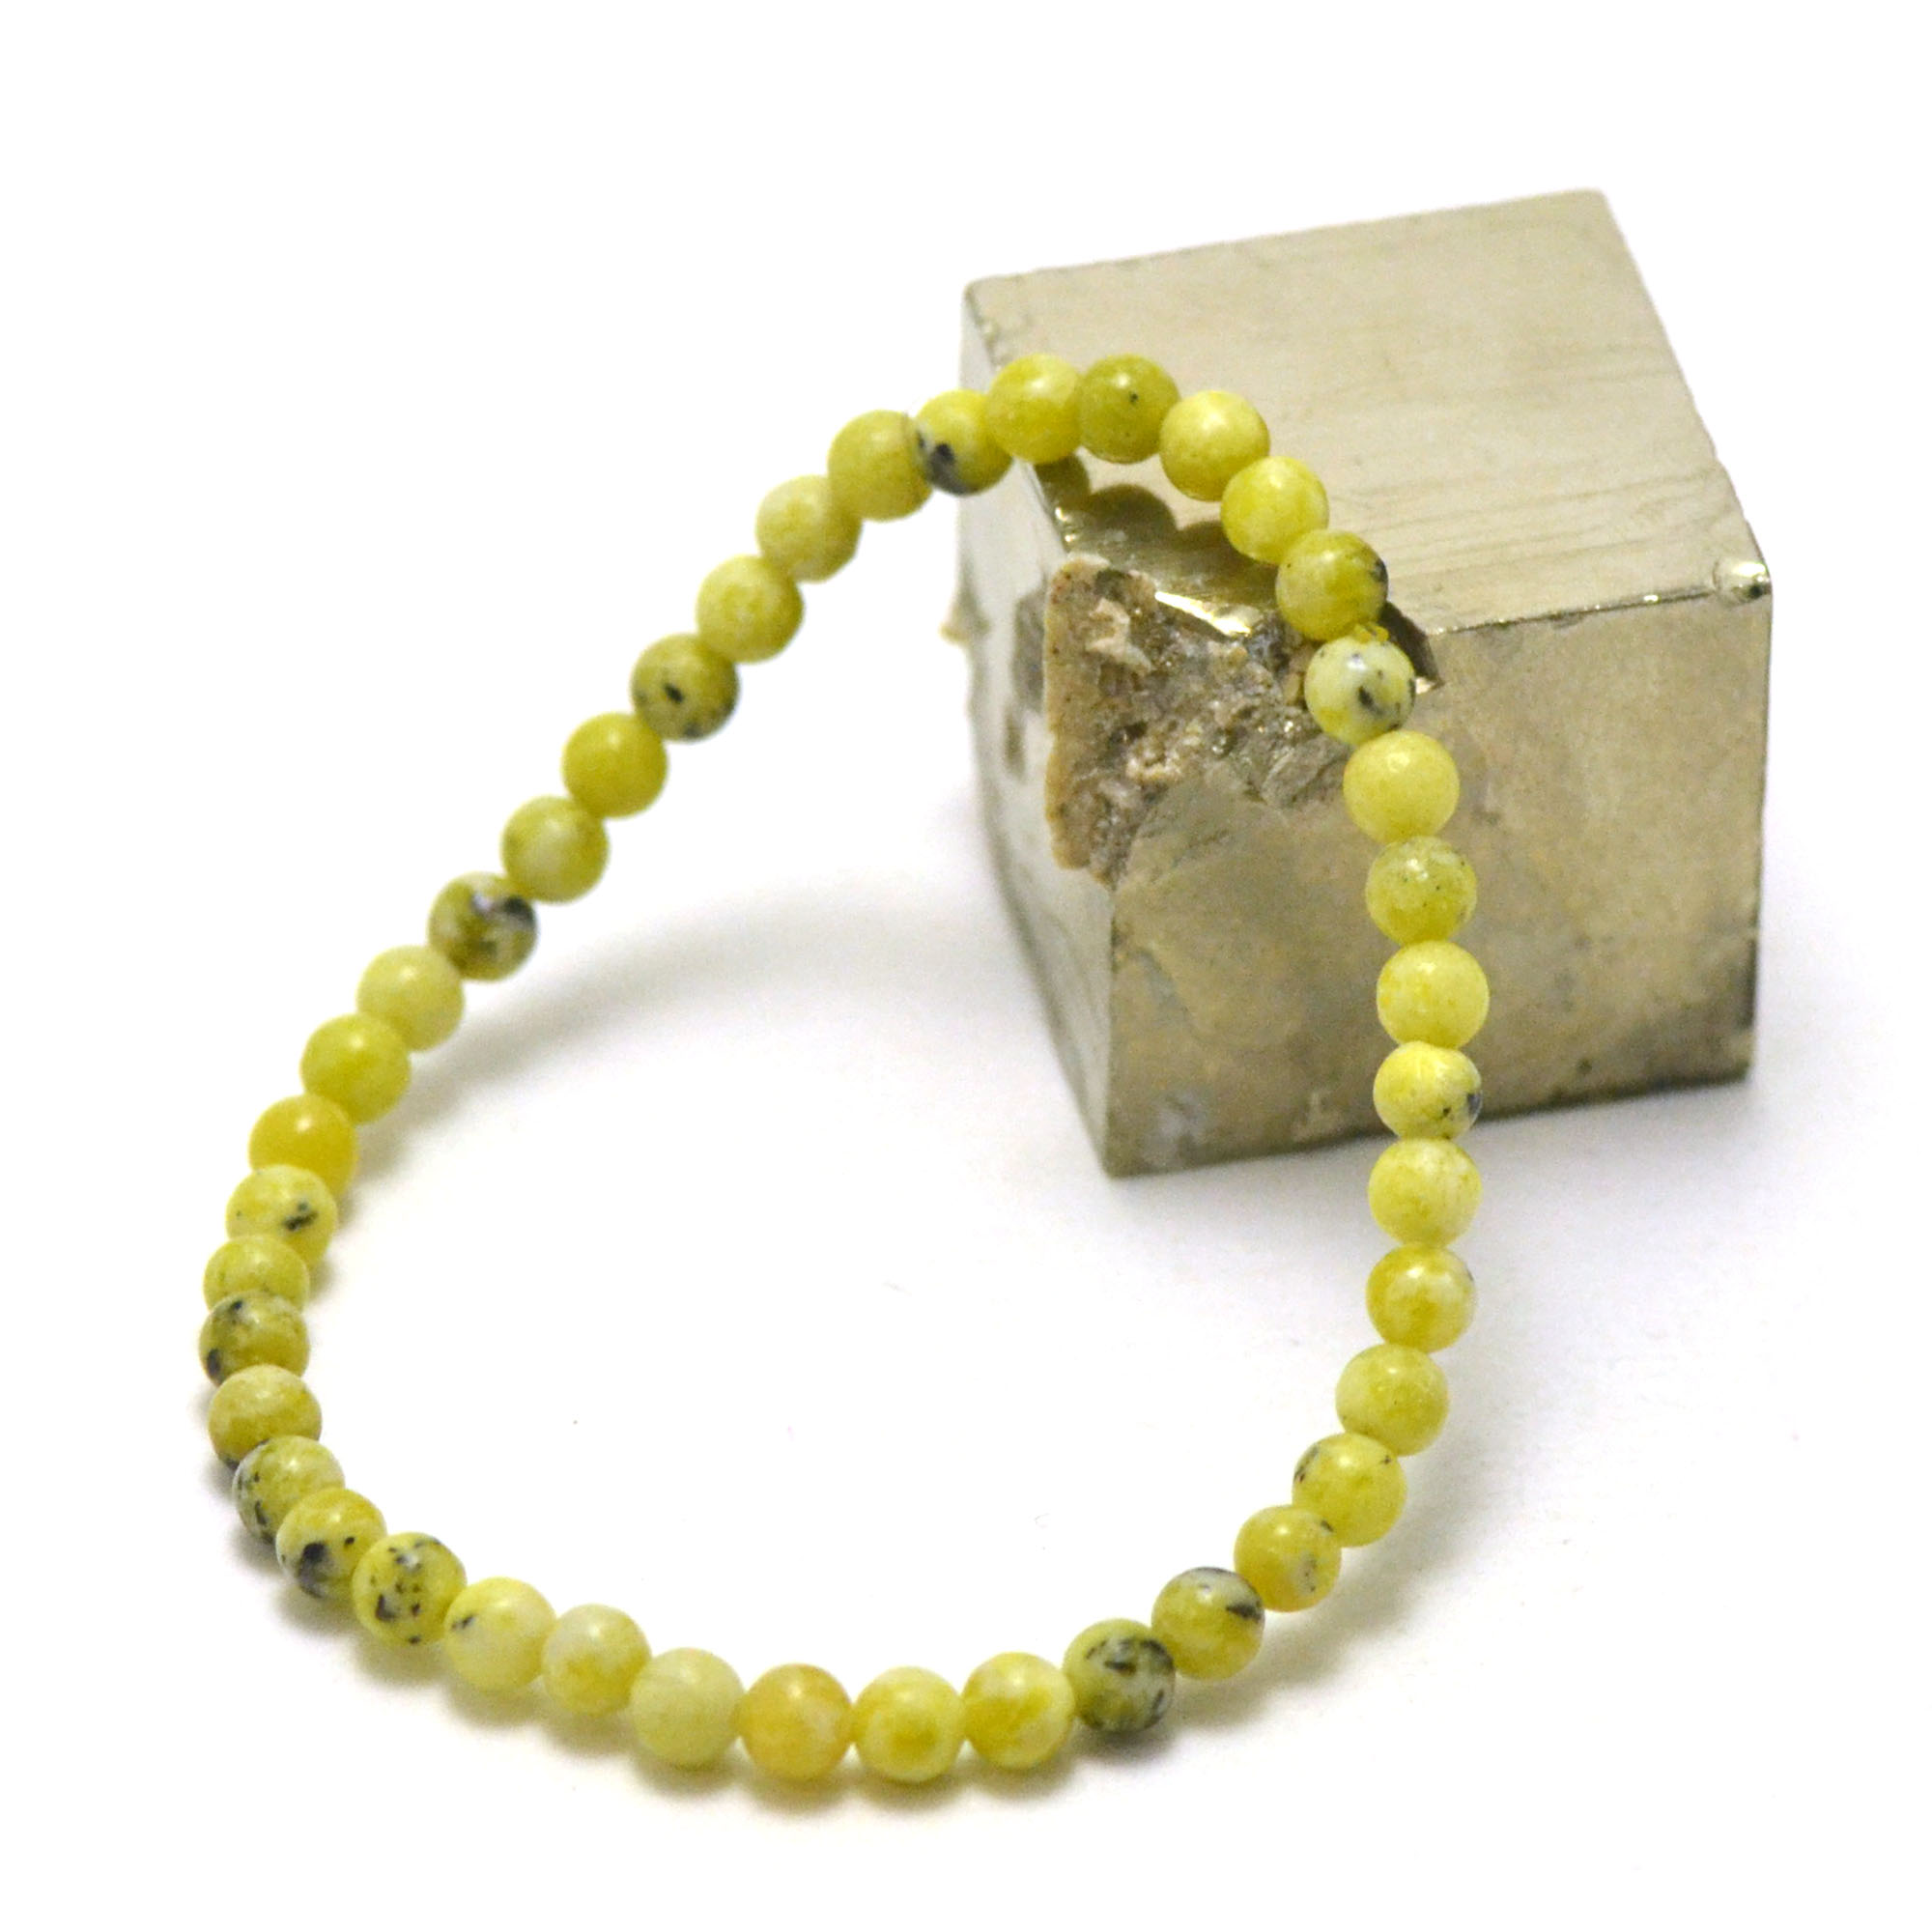 bracelet chrysoprase citron  ronde 4 mm, pierre naturelle